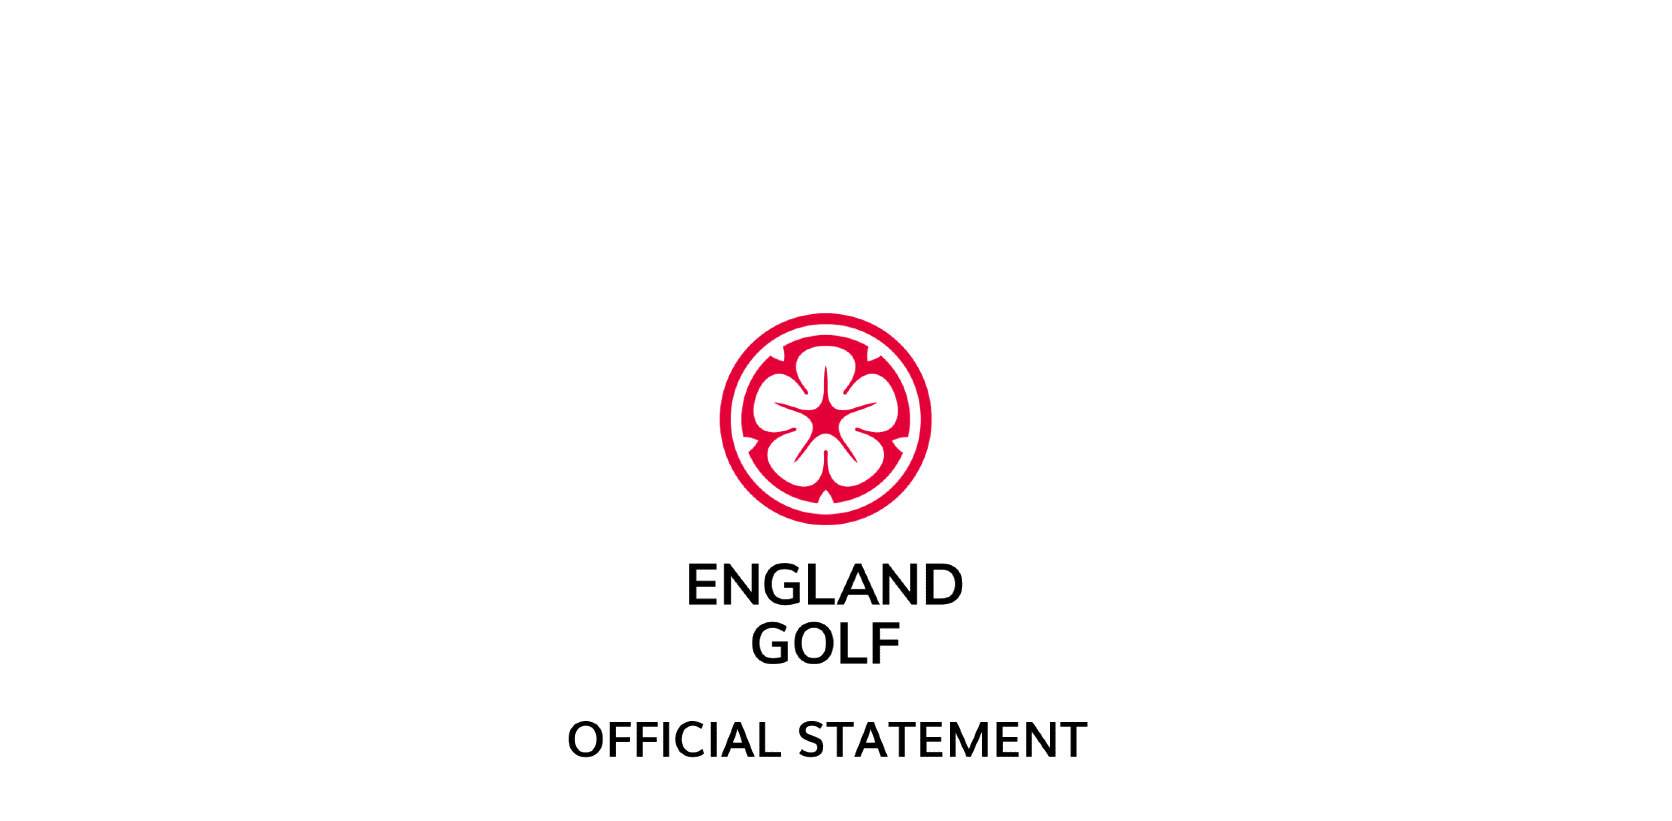 Covid-19 Update: Closure of golf clubs and facilities